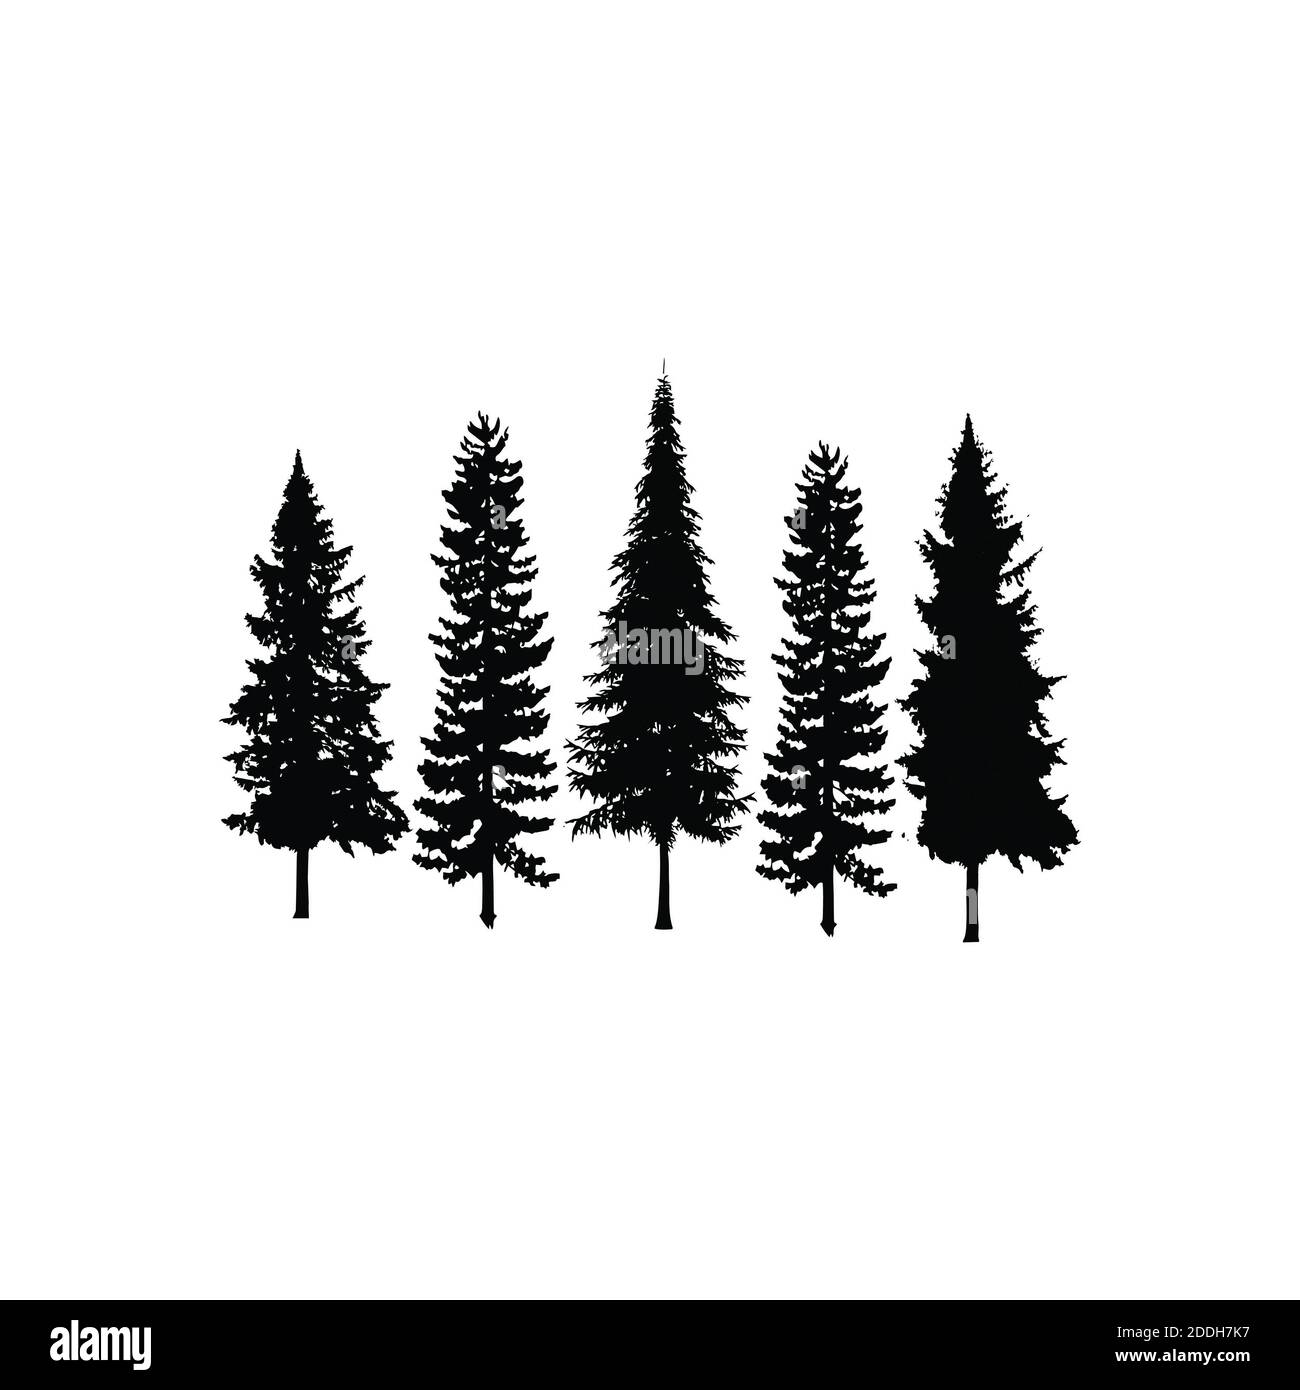 Cypress Tree Silhouette High Resolution Stock Photography And Images Alamy